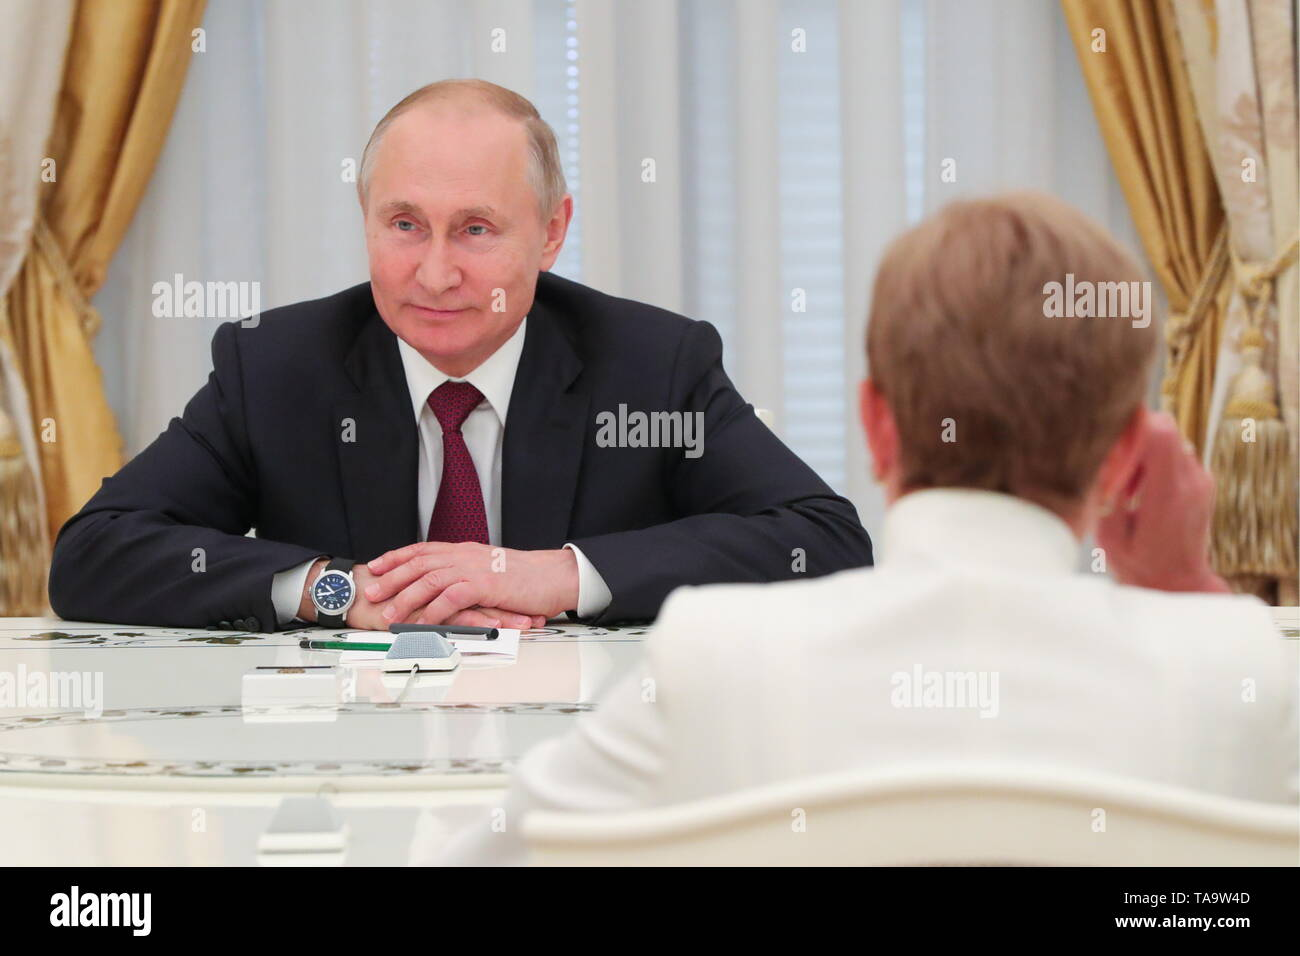 Moscow, Russia. 23rd May, 2019. MOSCOW, RUSSIA - MAY 23, 2019: Russia's President Vladimir Putin during a meeting with former heads of Russian regions, at the Moscow Kremlin. Mikhail Klimentyev/Russian Presidential Press and Information Office/TASS Credit: ITAR-TASS News Agency/Alamy Live News - Stock Image